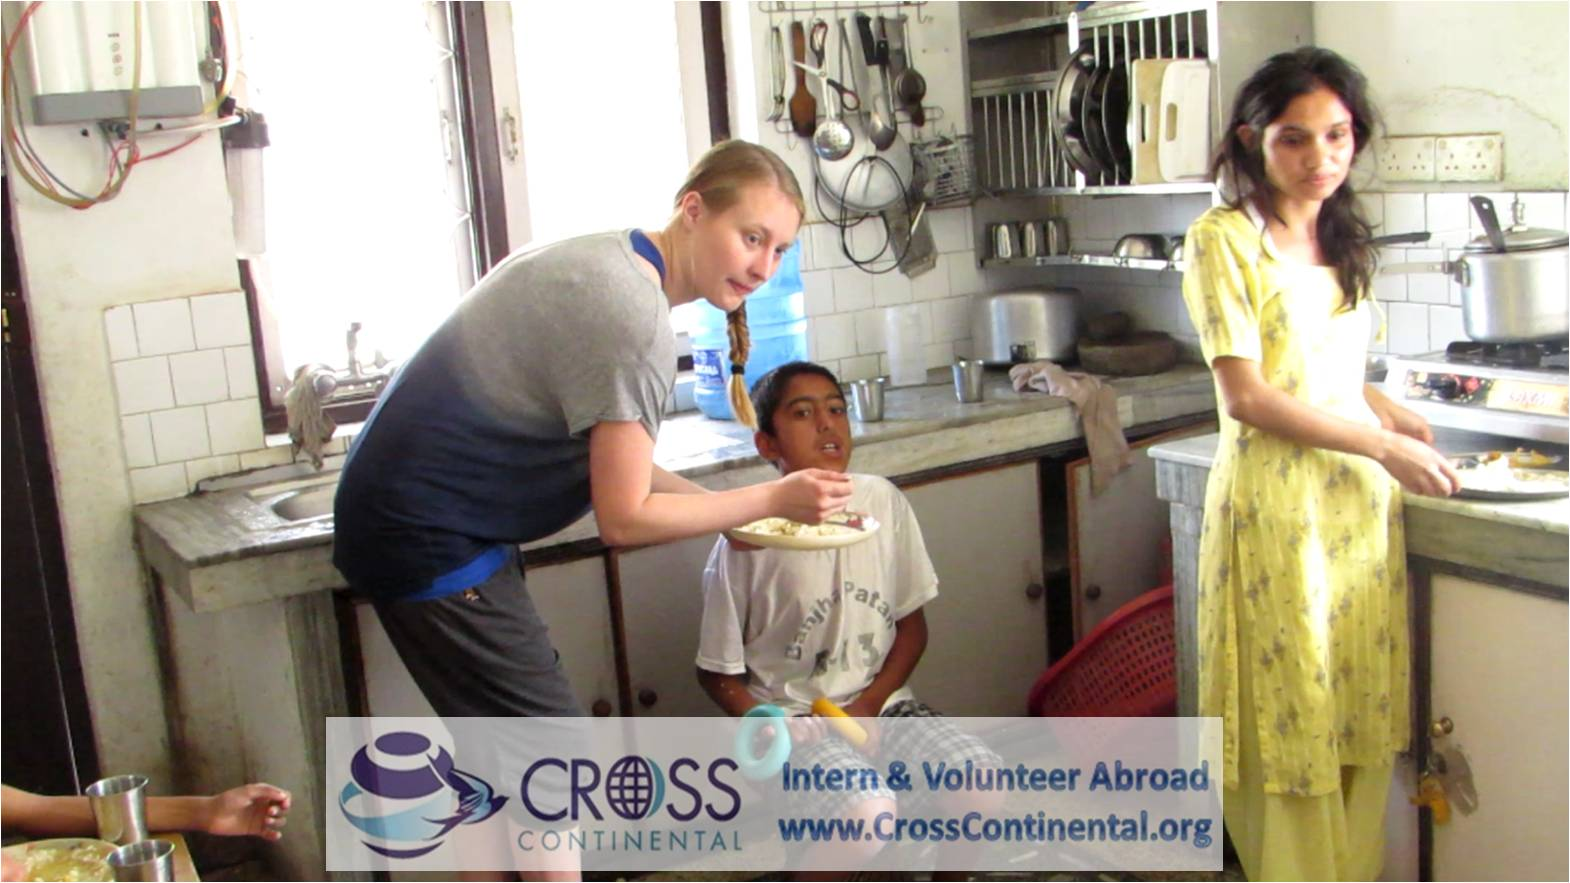 caring for disabled children in Nepal (international volunteer from Denmark (Europe)